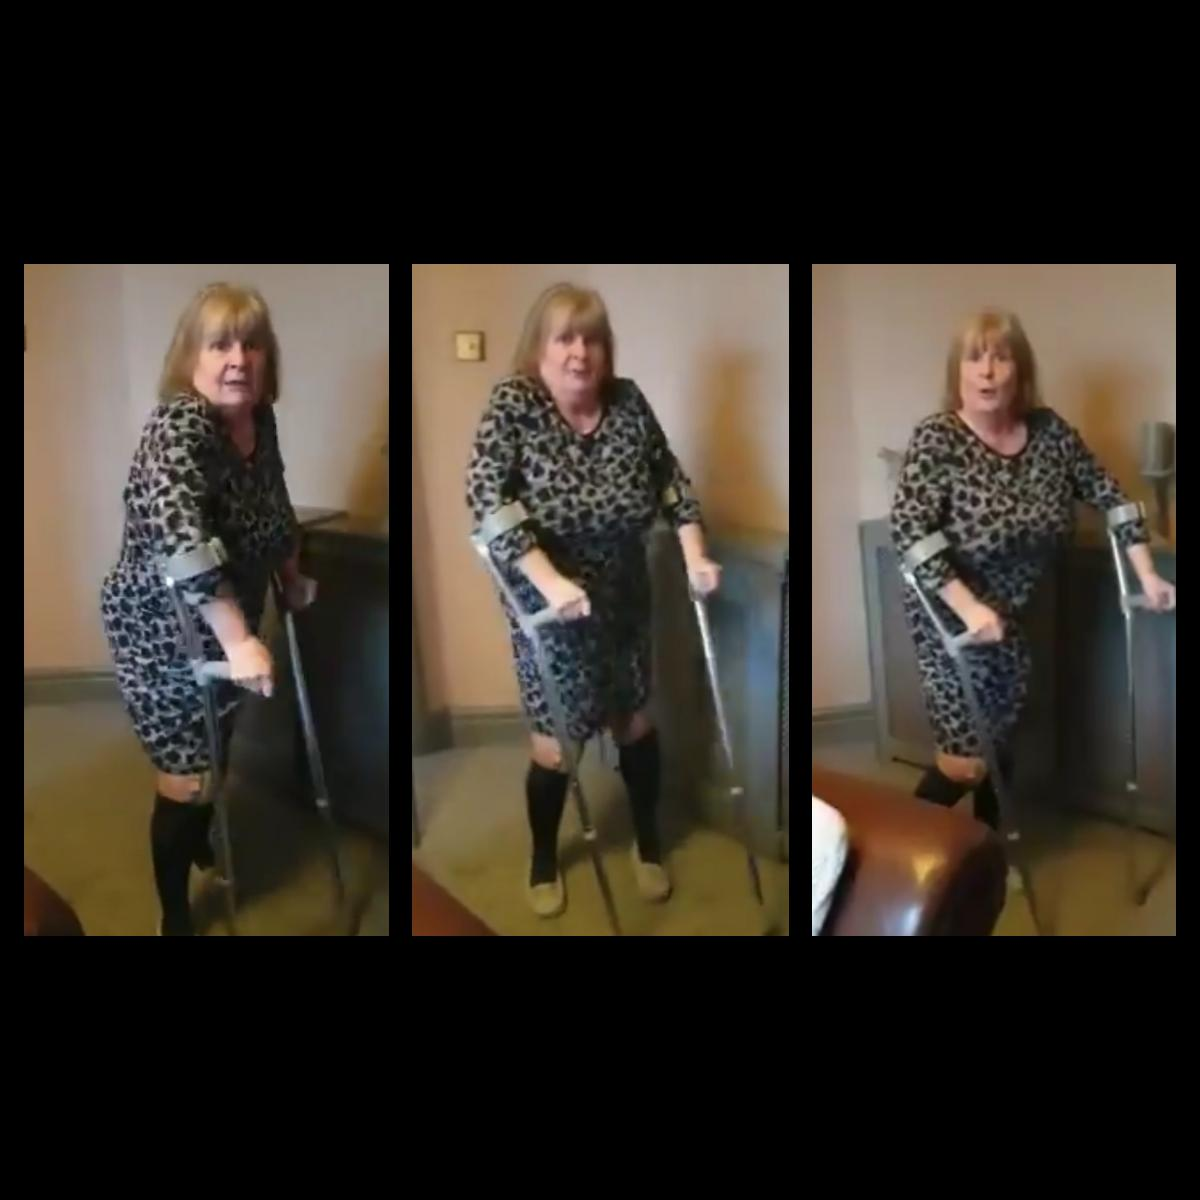 Stourbridge Grandmother On Crutches Dancing To Missy Elliot